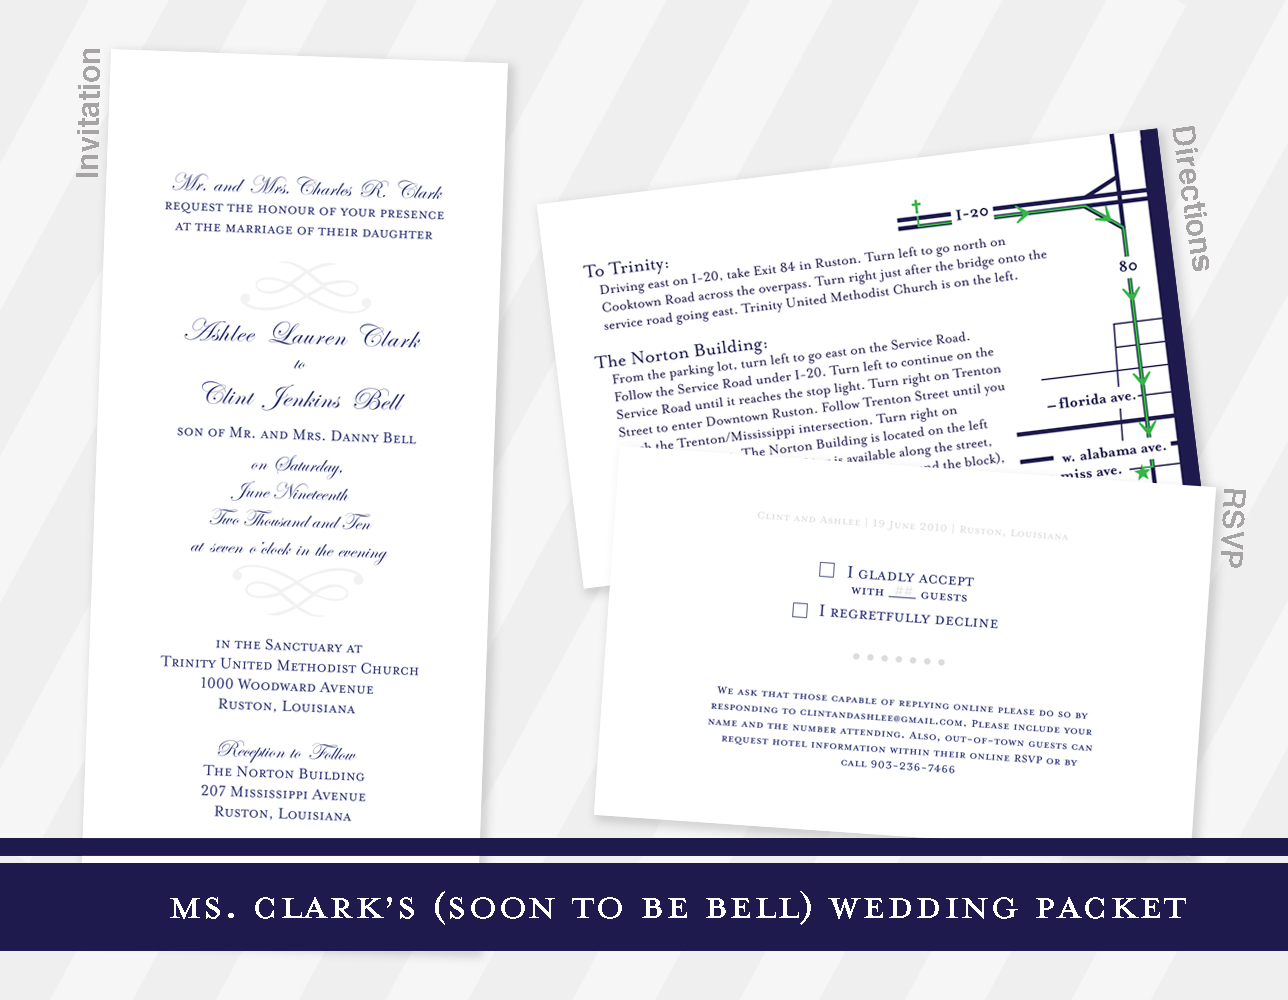 Ms. Clarks Wedding Packet